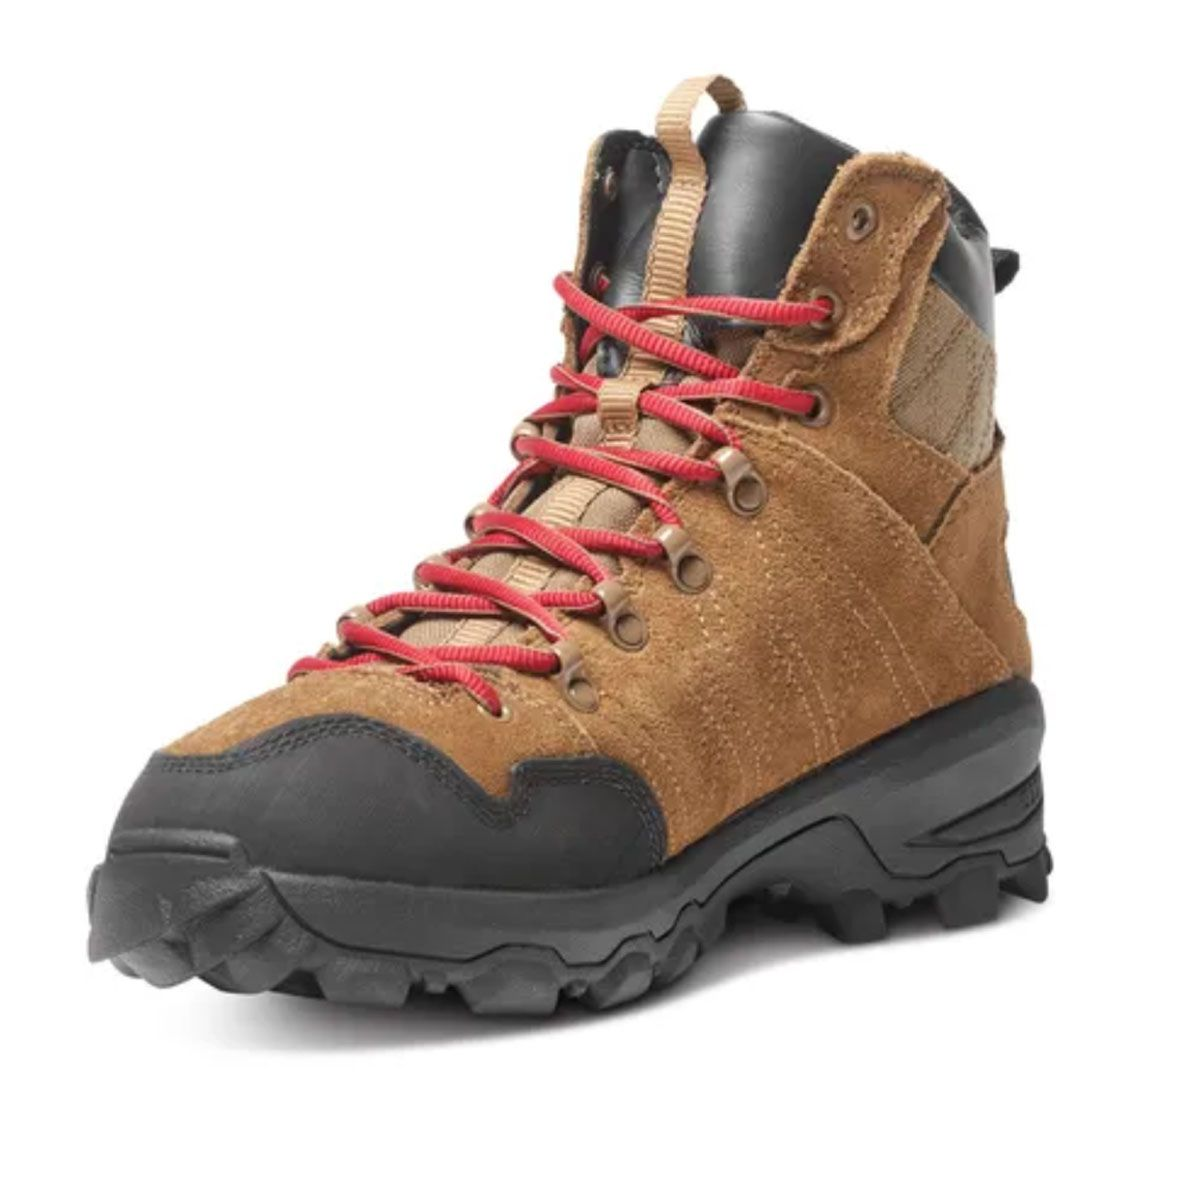 Bota de Couro e Camurça 5.11 Tactical Cable Hiker Dark Coyote